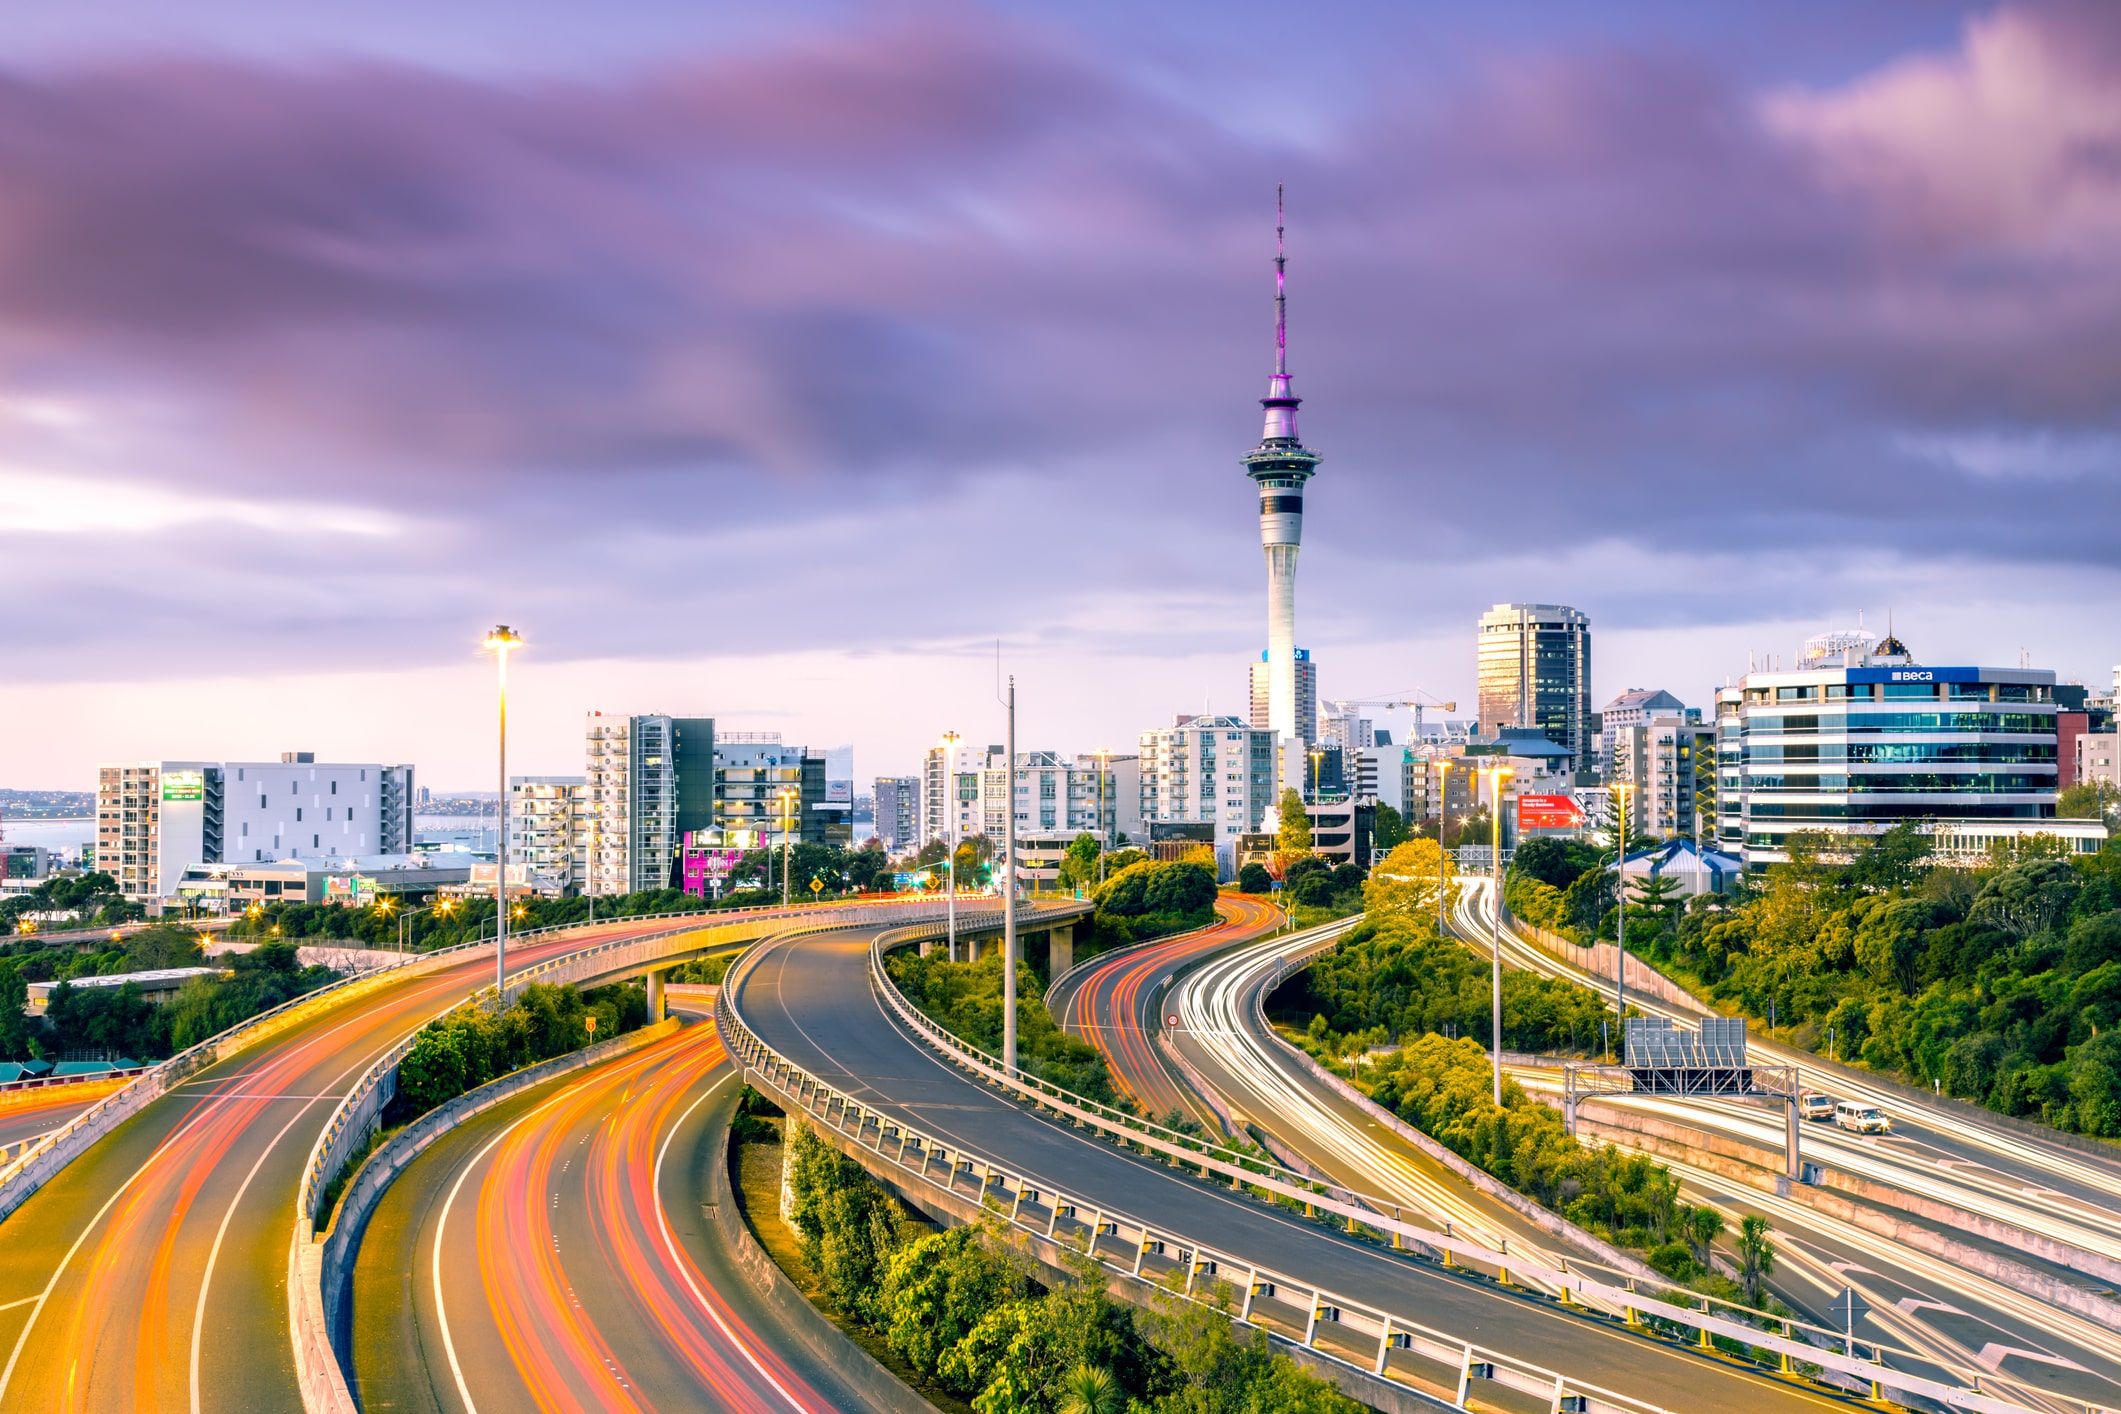 Things to know before visiting New Zealand